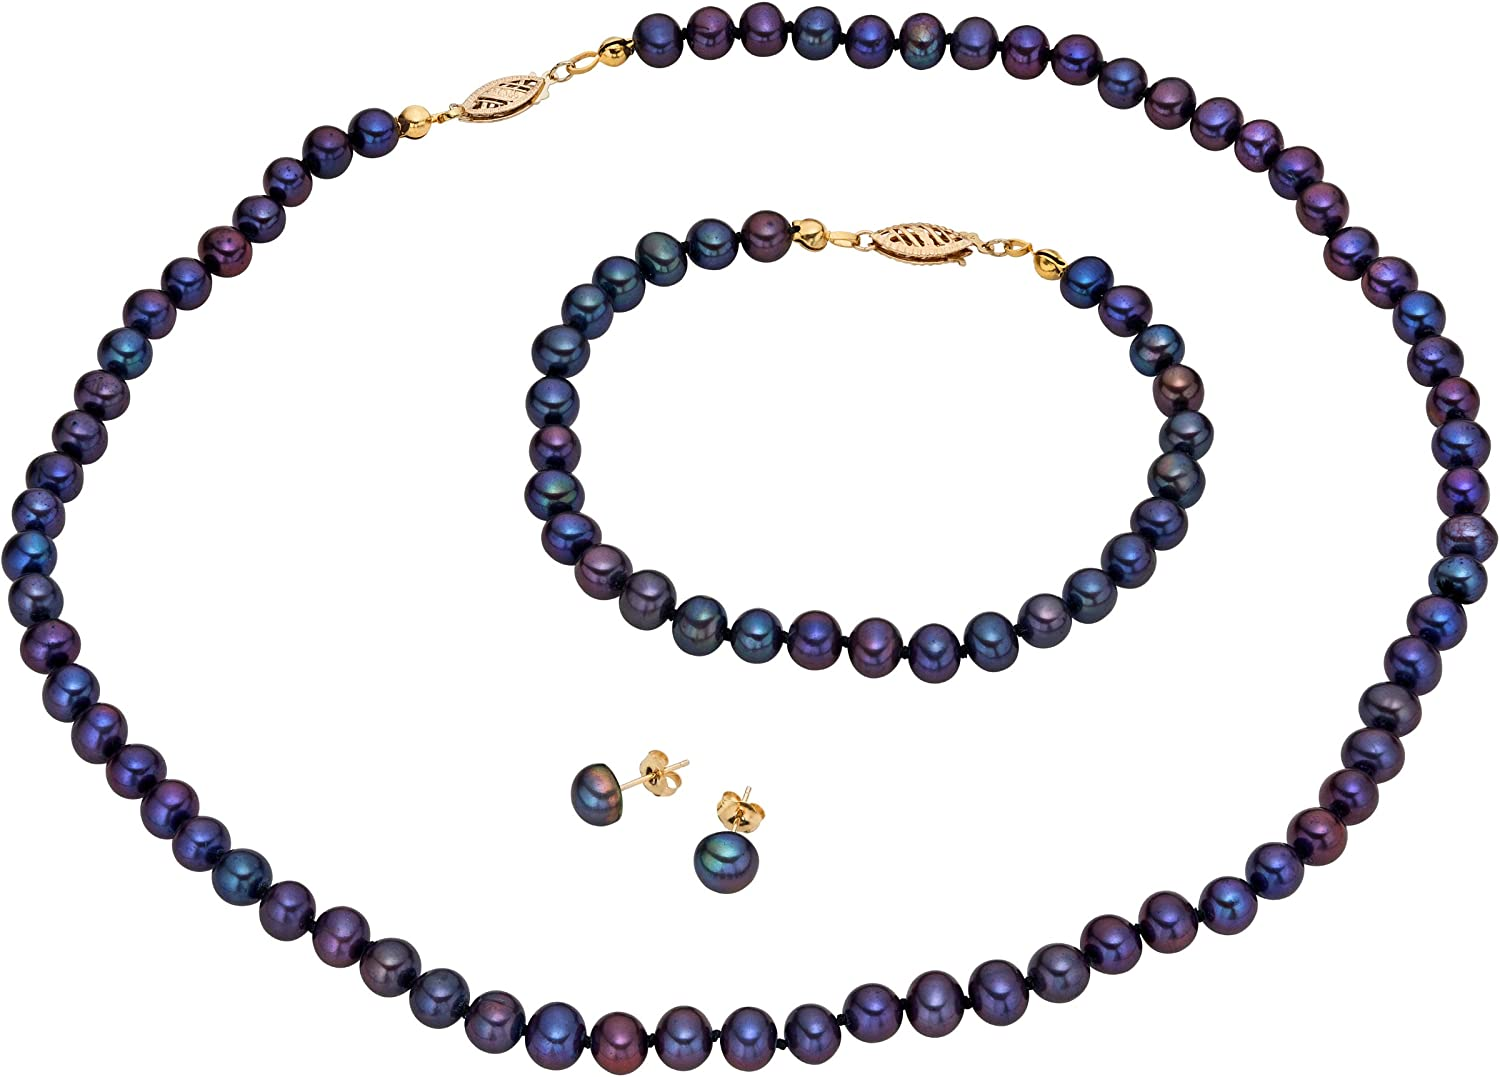 14k Gold Dyed-black Cultured Freshwater Pearl Jewelry Set (7-8 mm)